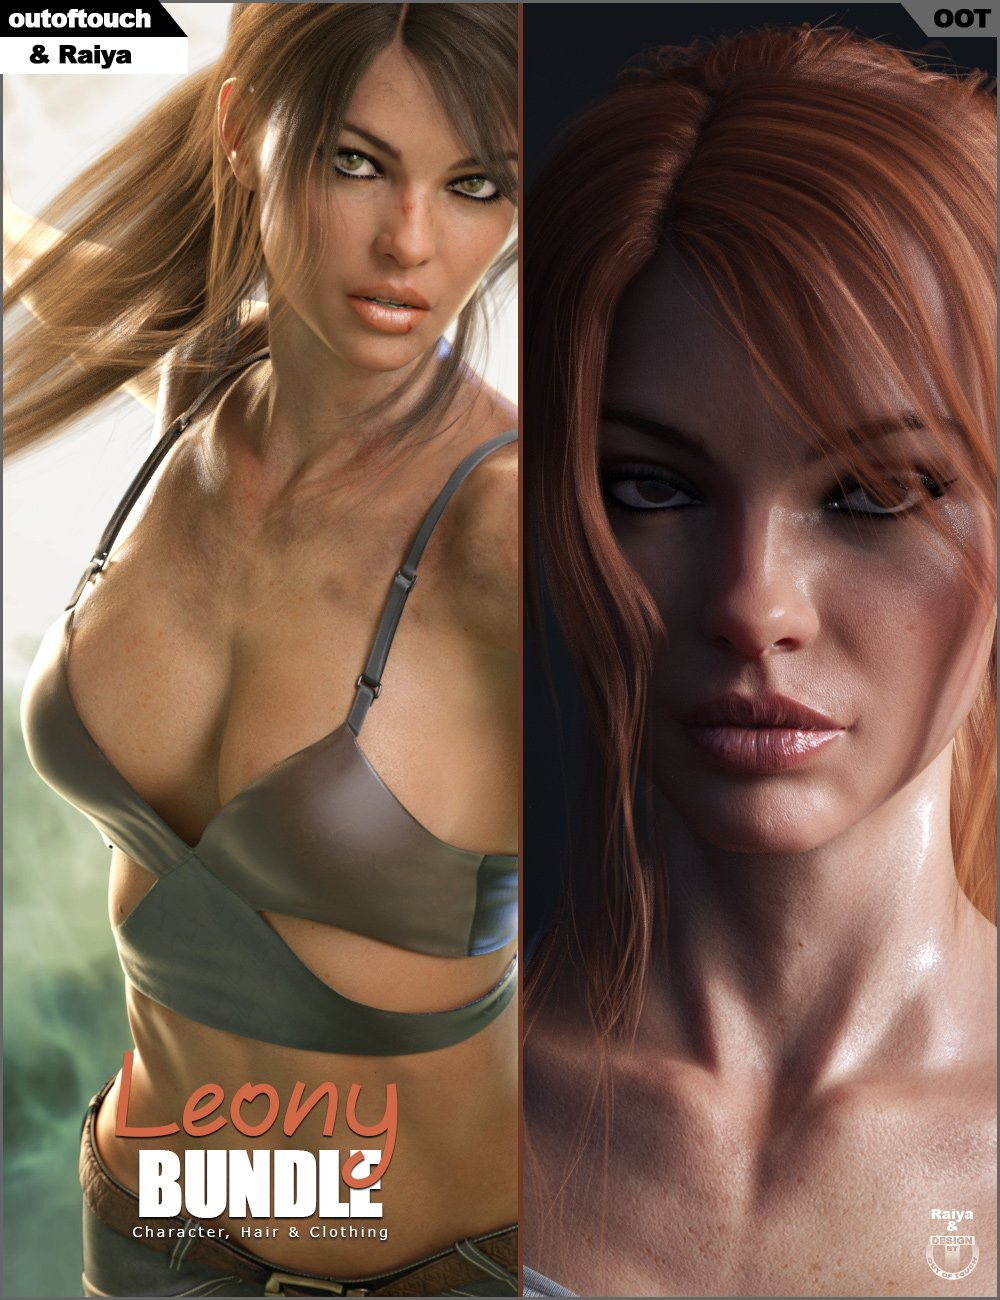 Leony Character, Clothing and Hair Bundle by: Raiyaoutoftouch, 3D Models by Daz 3D